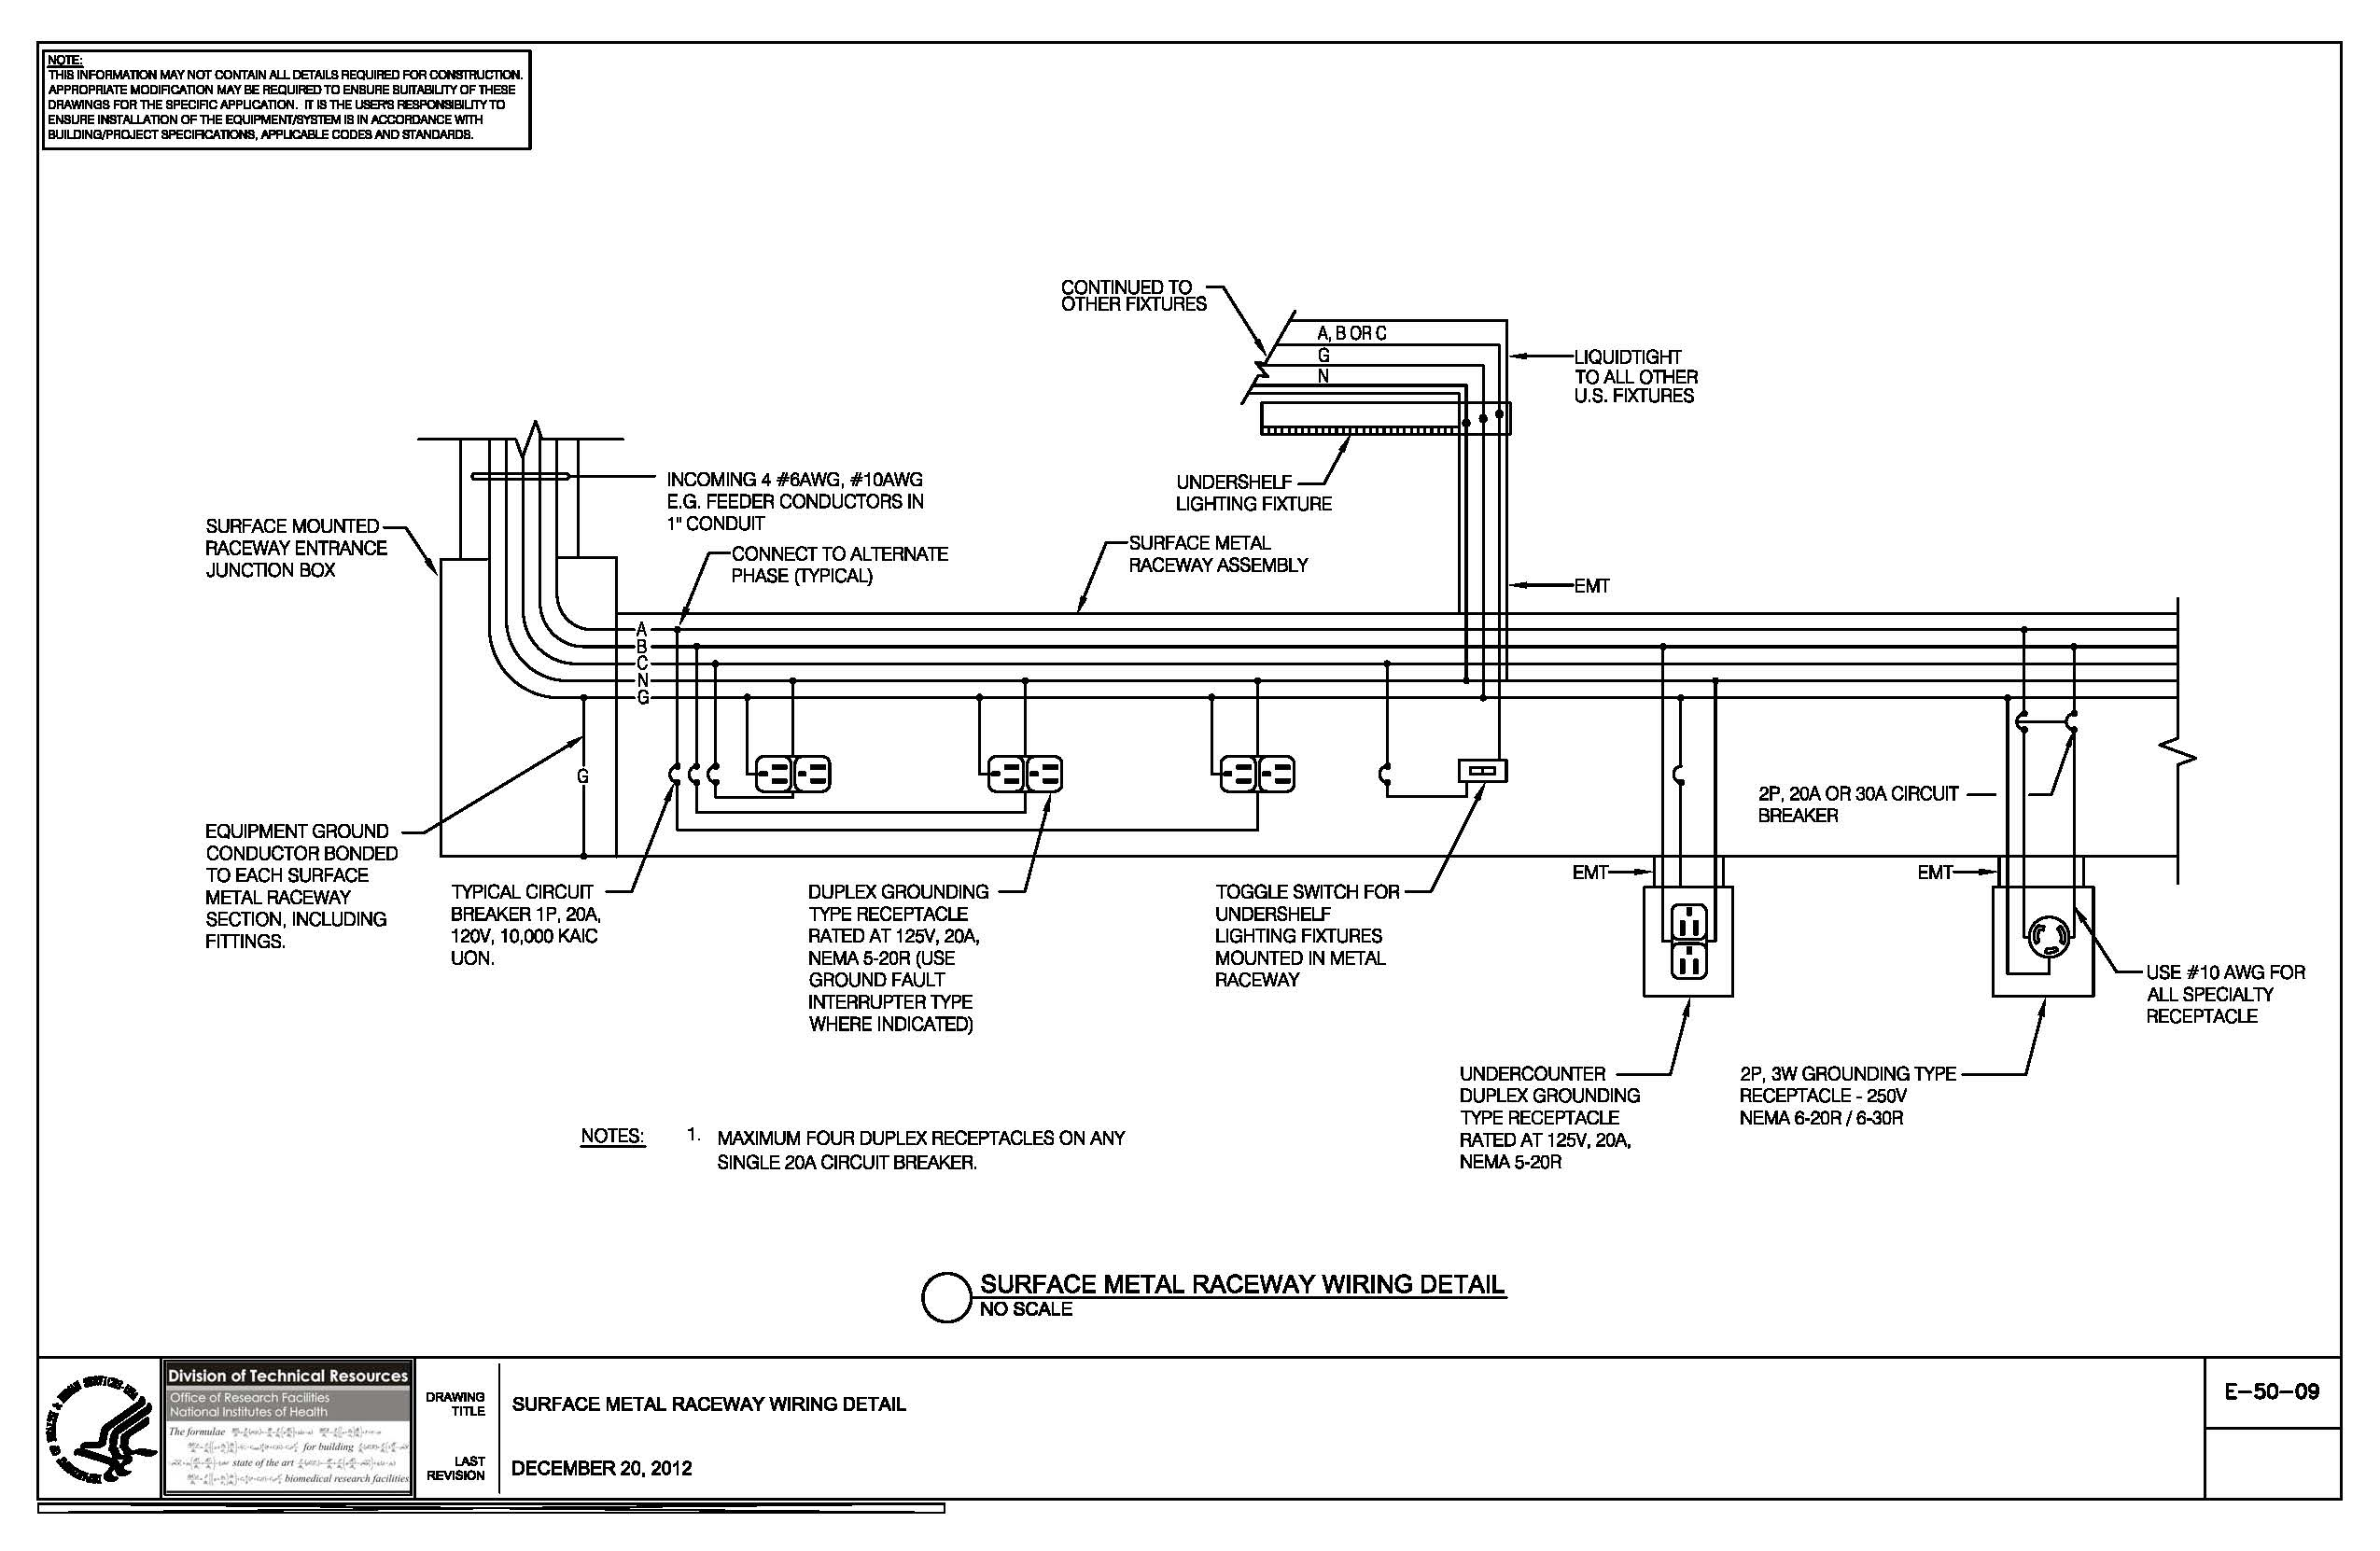 western ice breaker wiring diagram Download-Wiring Diagram Detail Name western ice breaker wiring diagram 8-q